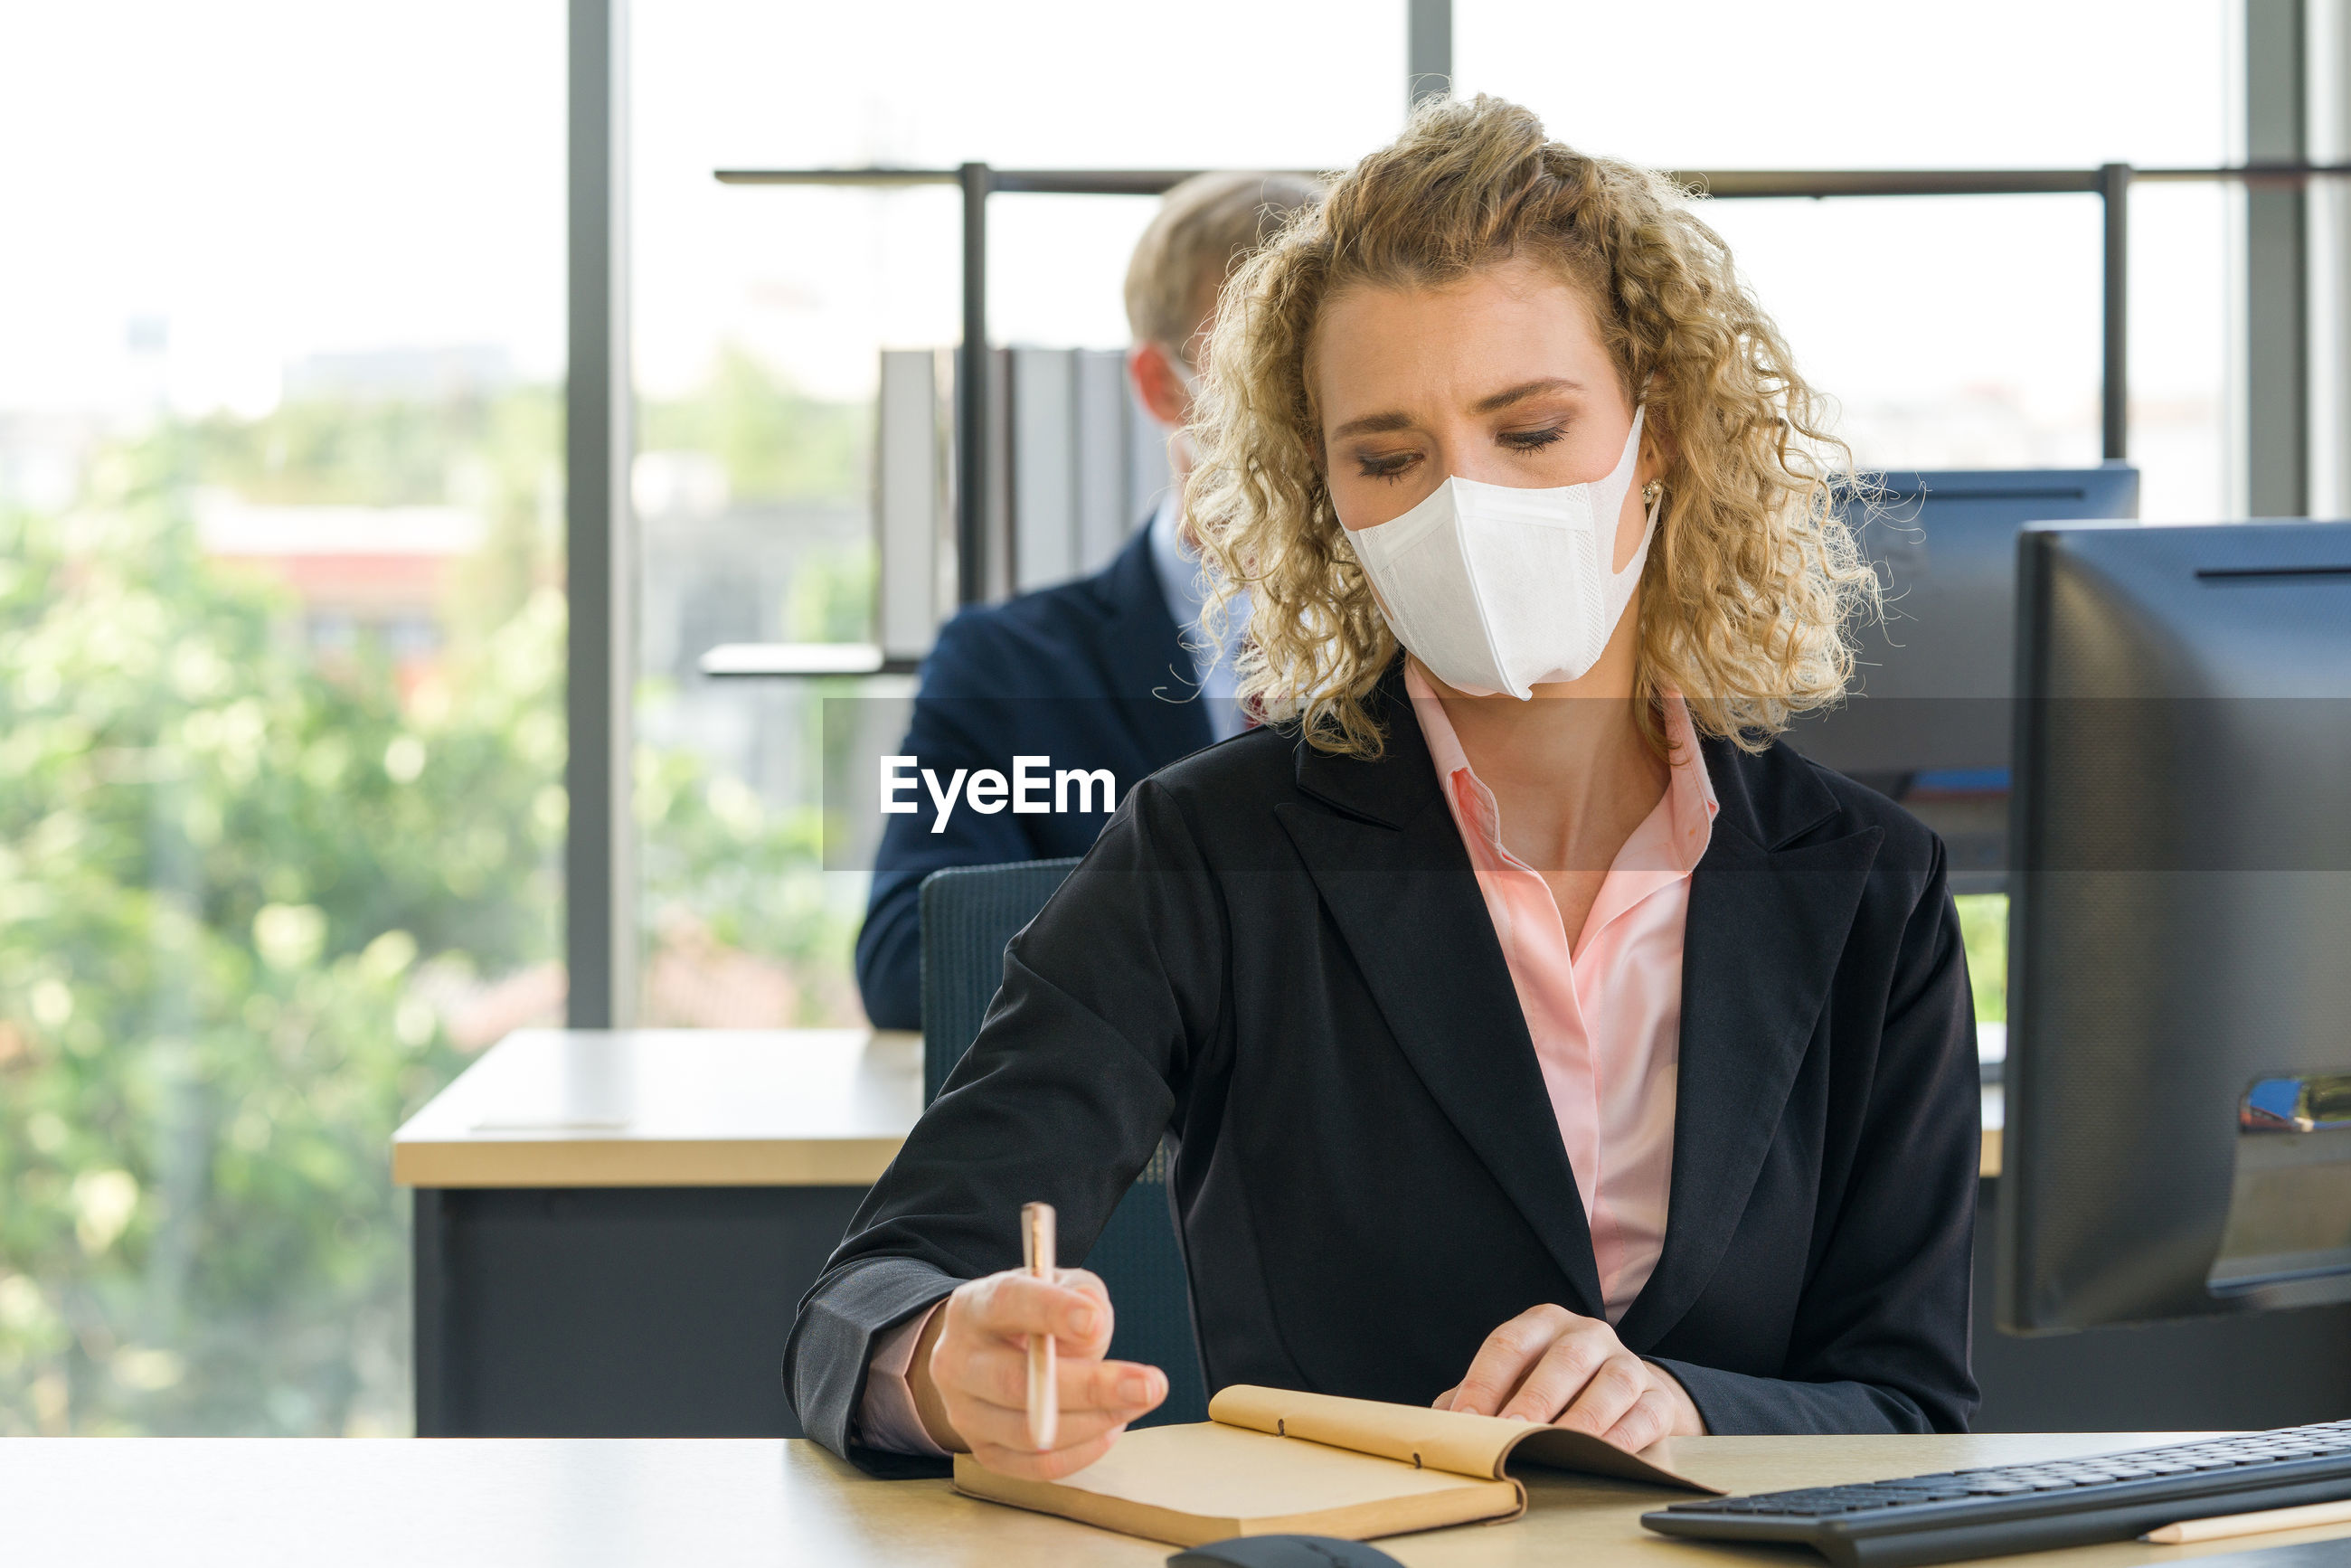 Businesswoman wearing mask reading book on desk in office